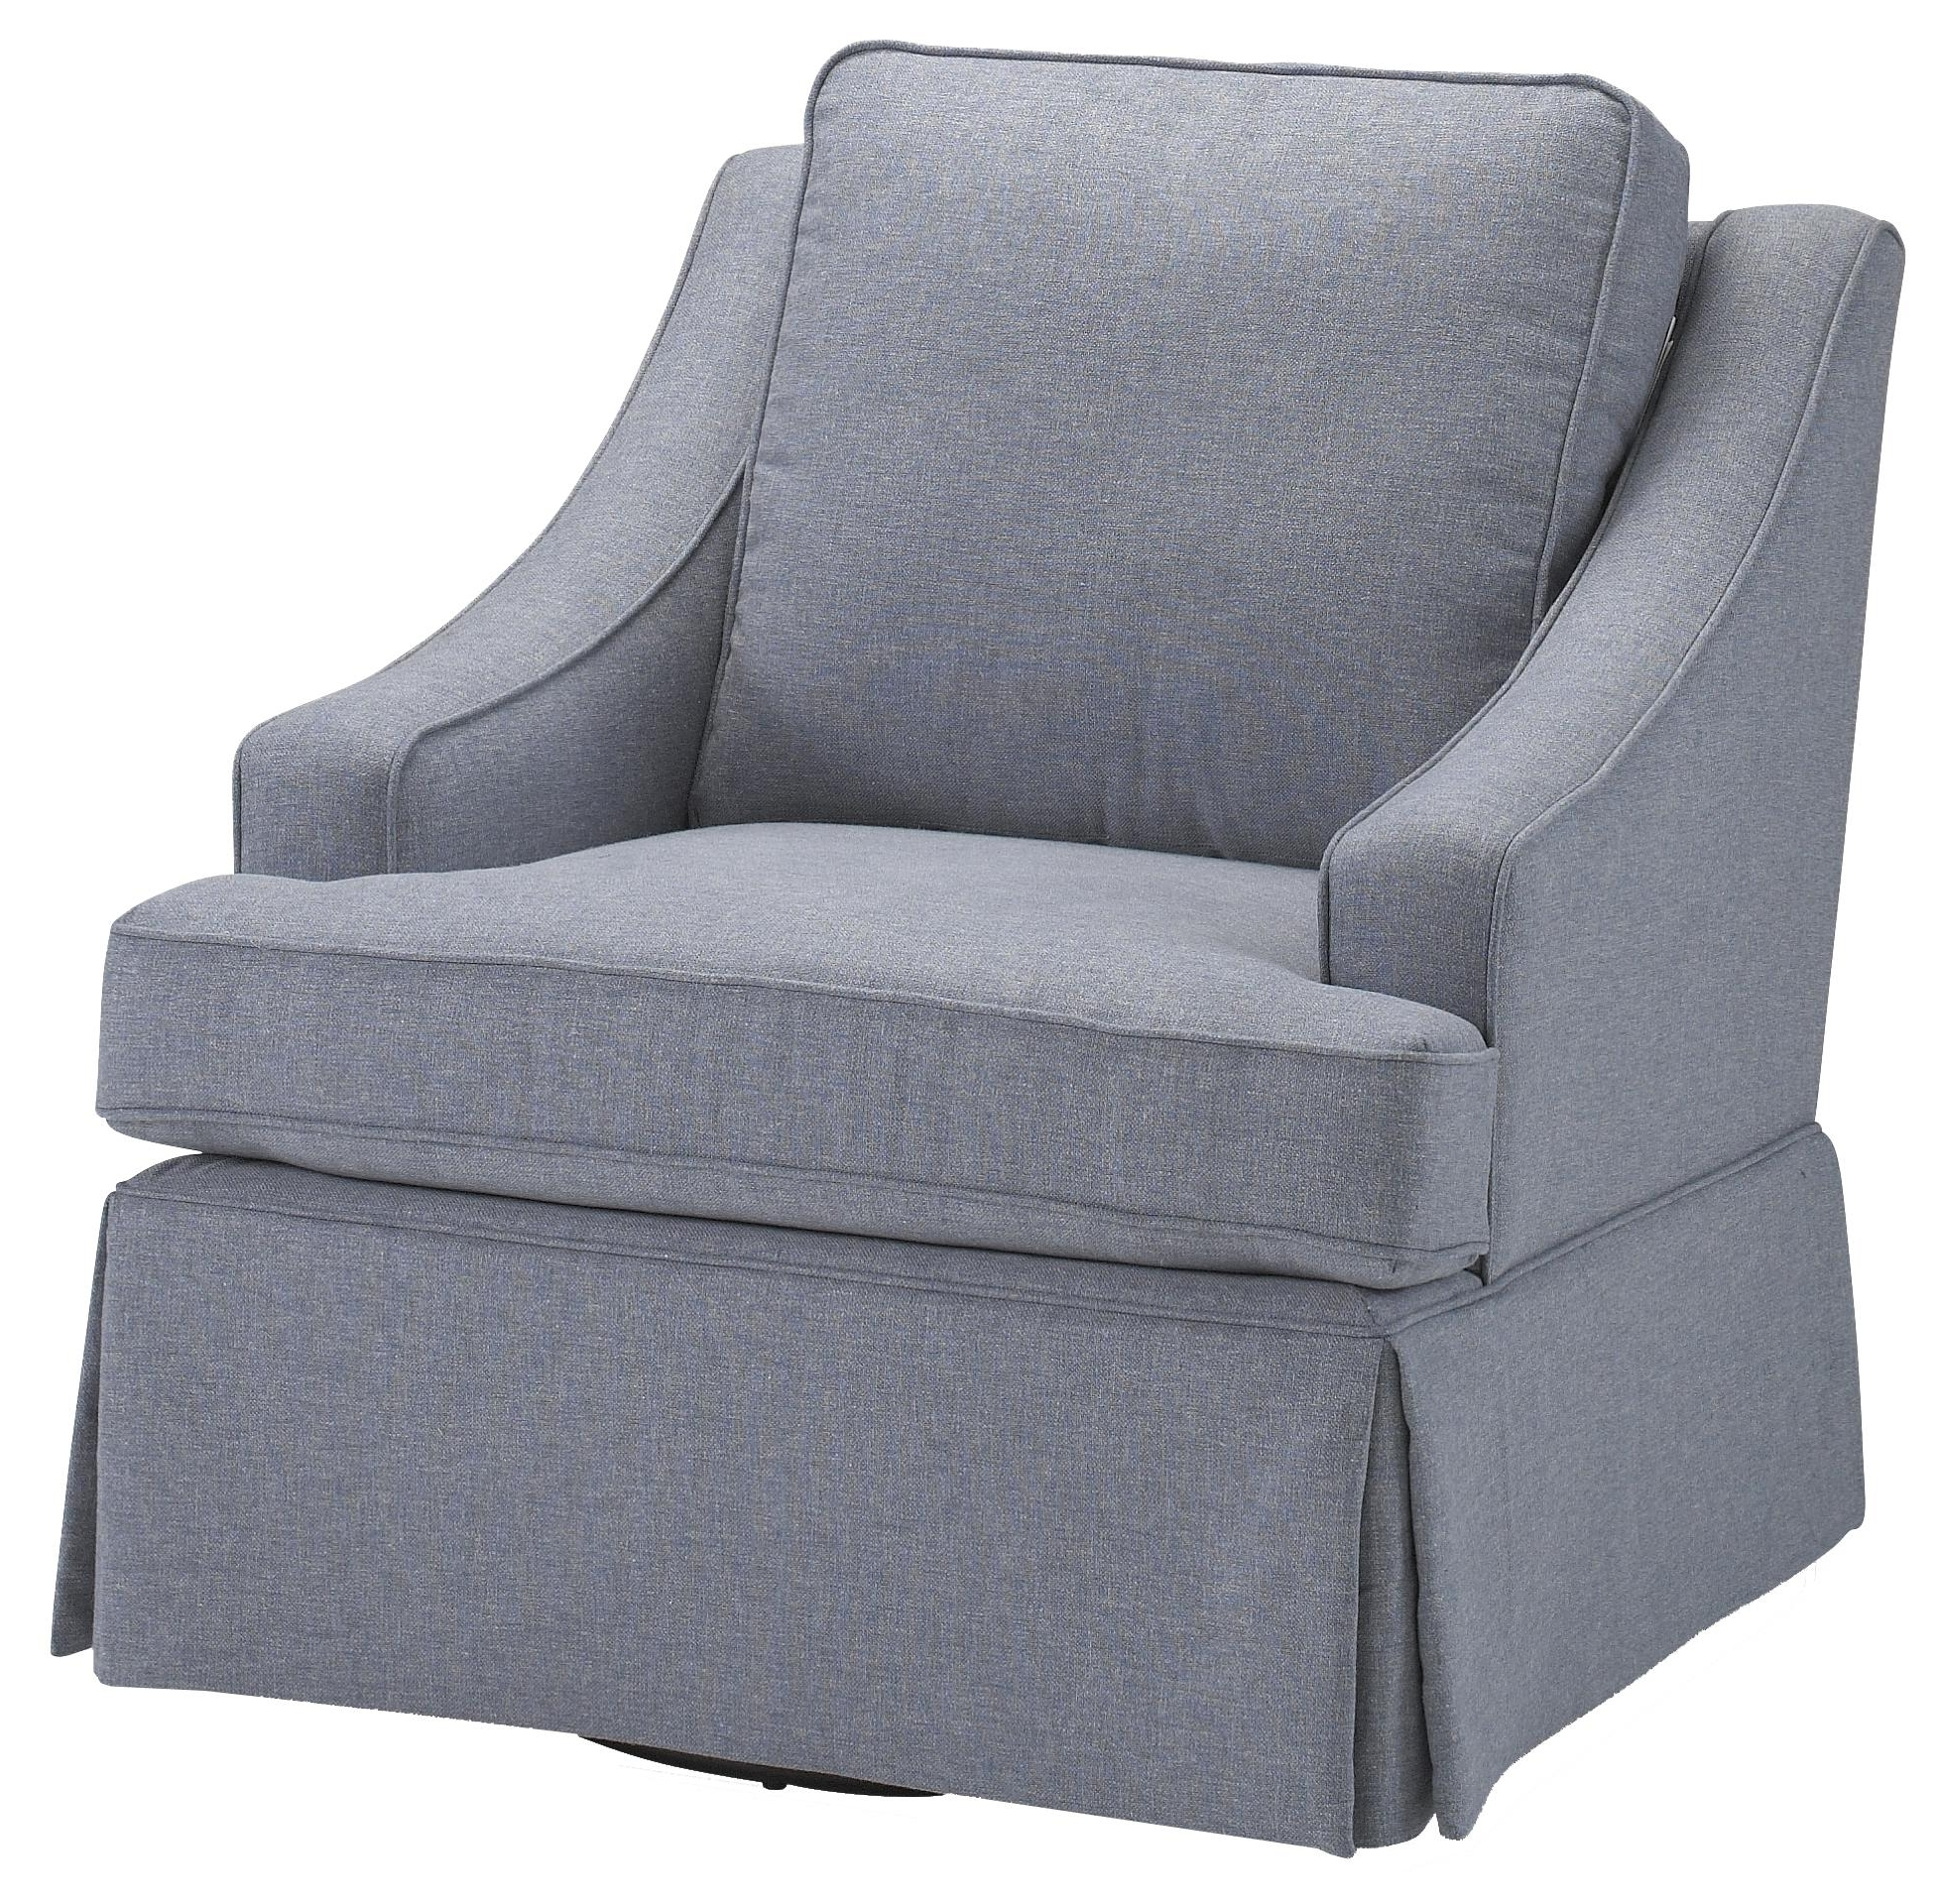 Contemporary Ayla Swivel Rocker Chairbest Home Furnishings Inside Most Up To Date Swivel Rocking Chairs (View 7 of 15)